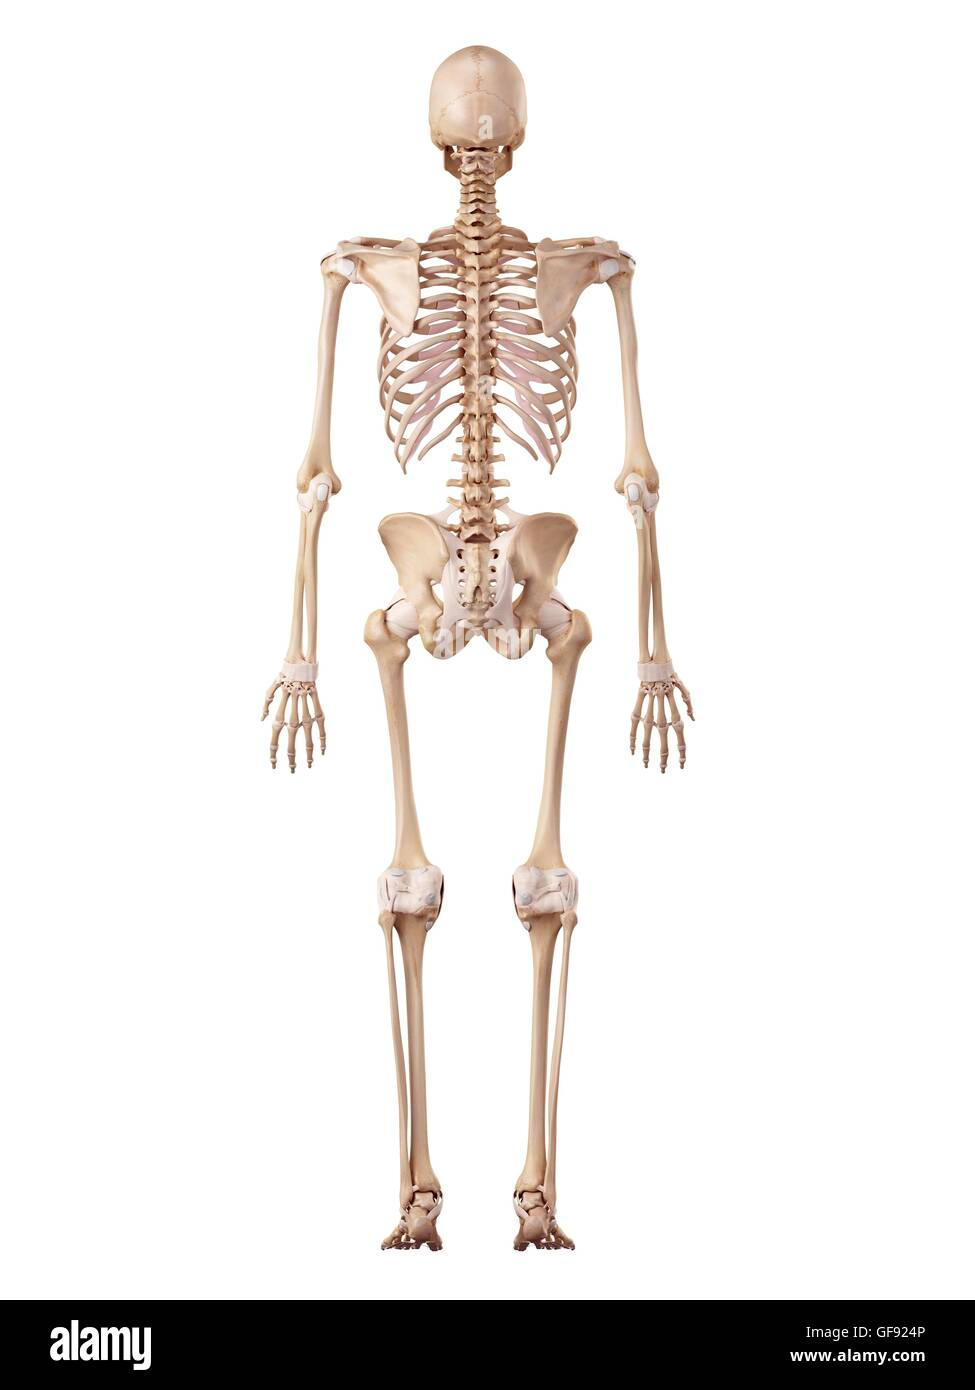 Human Skeletal System Illustration Stock Photo 112681318 Alamy